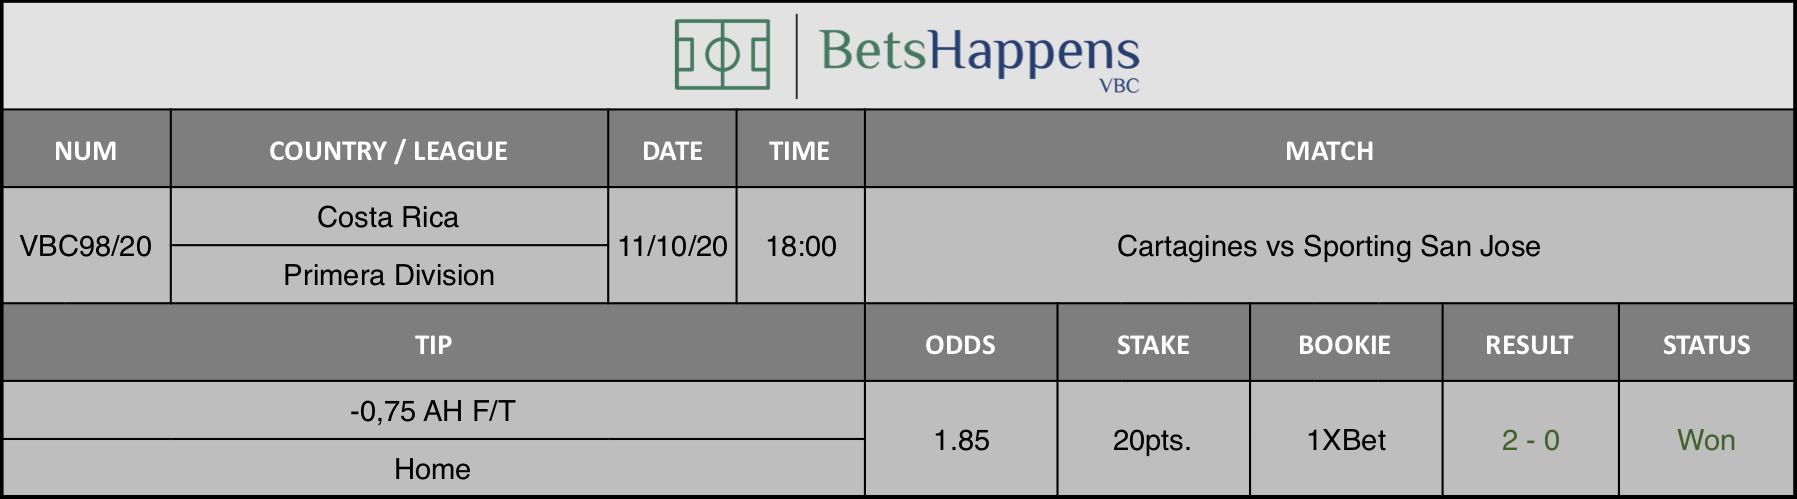 Results of our prediction for the Cartagines vs Sporting San Jose game in which -0.75 AH F / T Home is recommended.